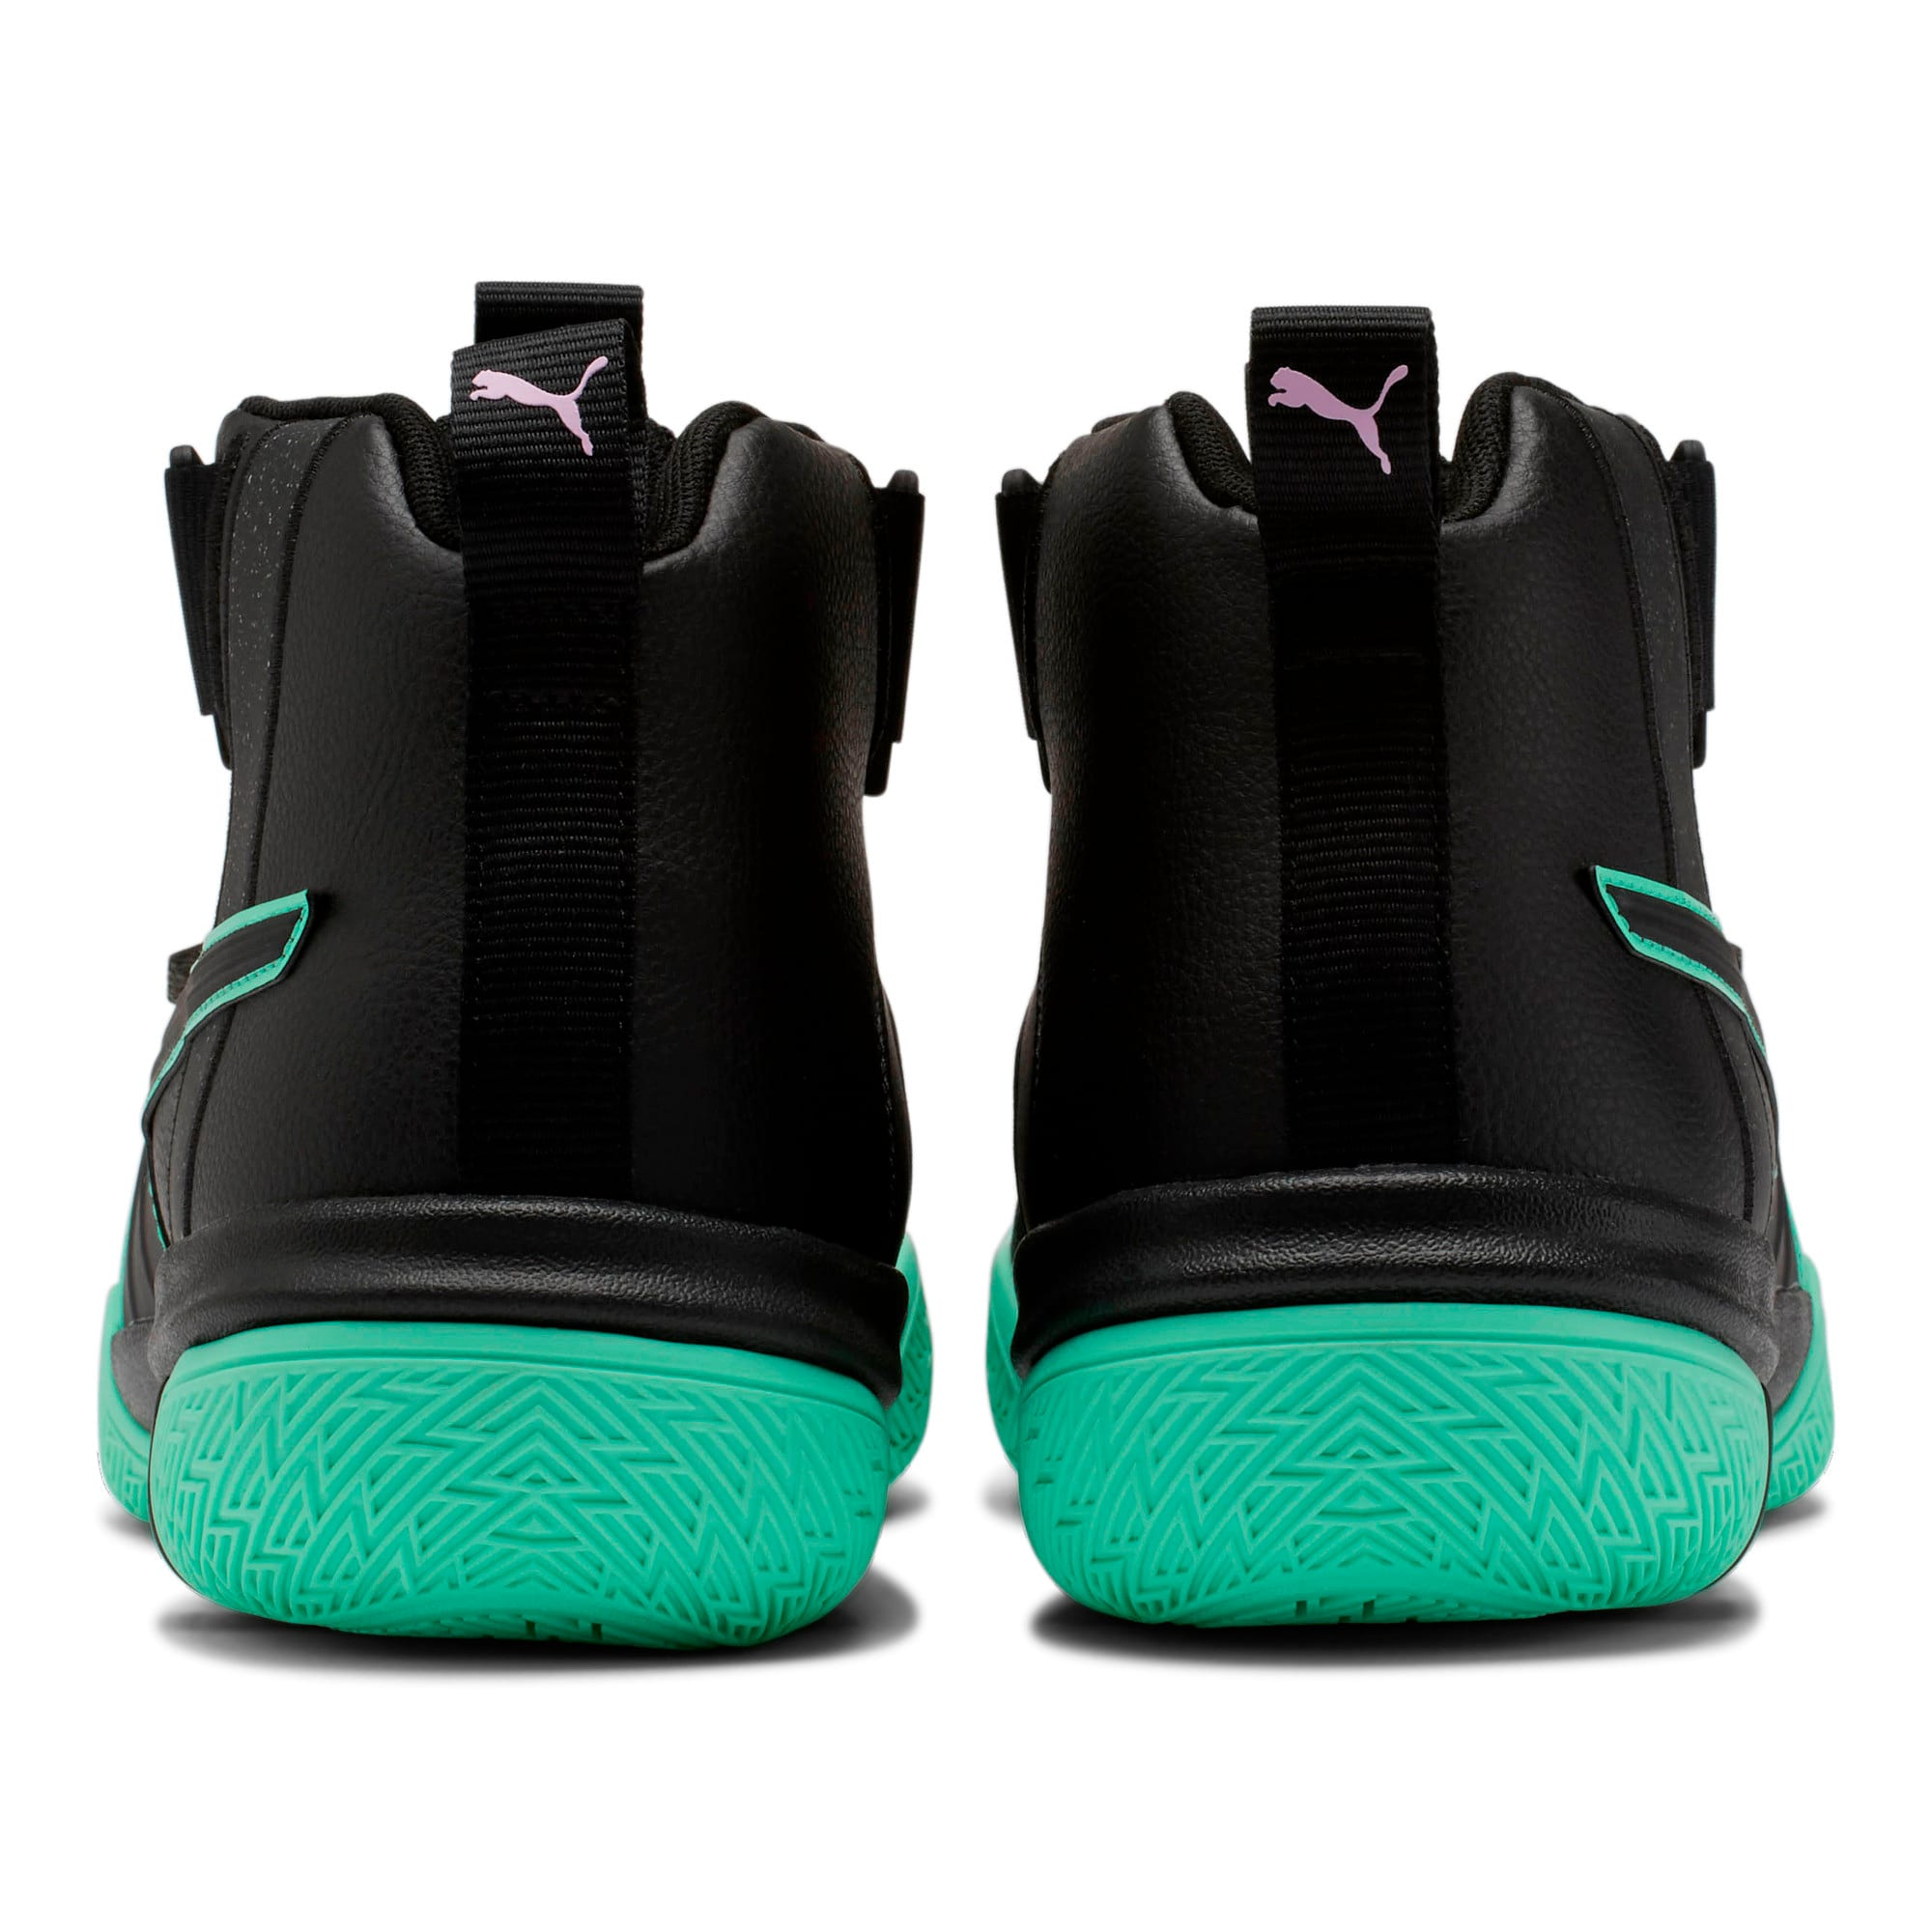 Thumbnail 3 of Legacy Dark Mode Basketball Shoes, Puma Black-Orchid Bloom, medium-IND